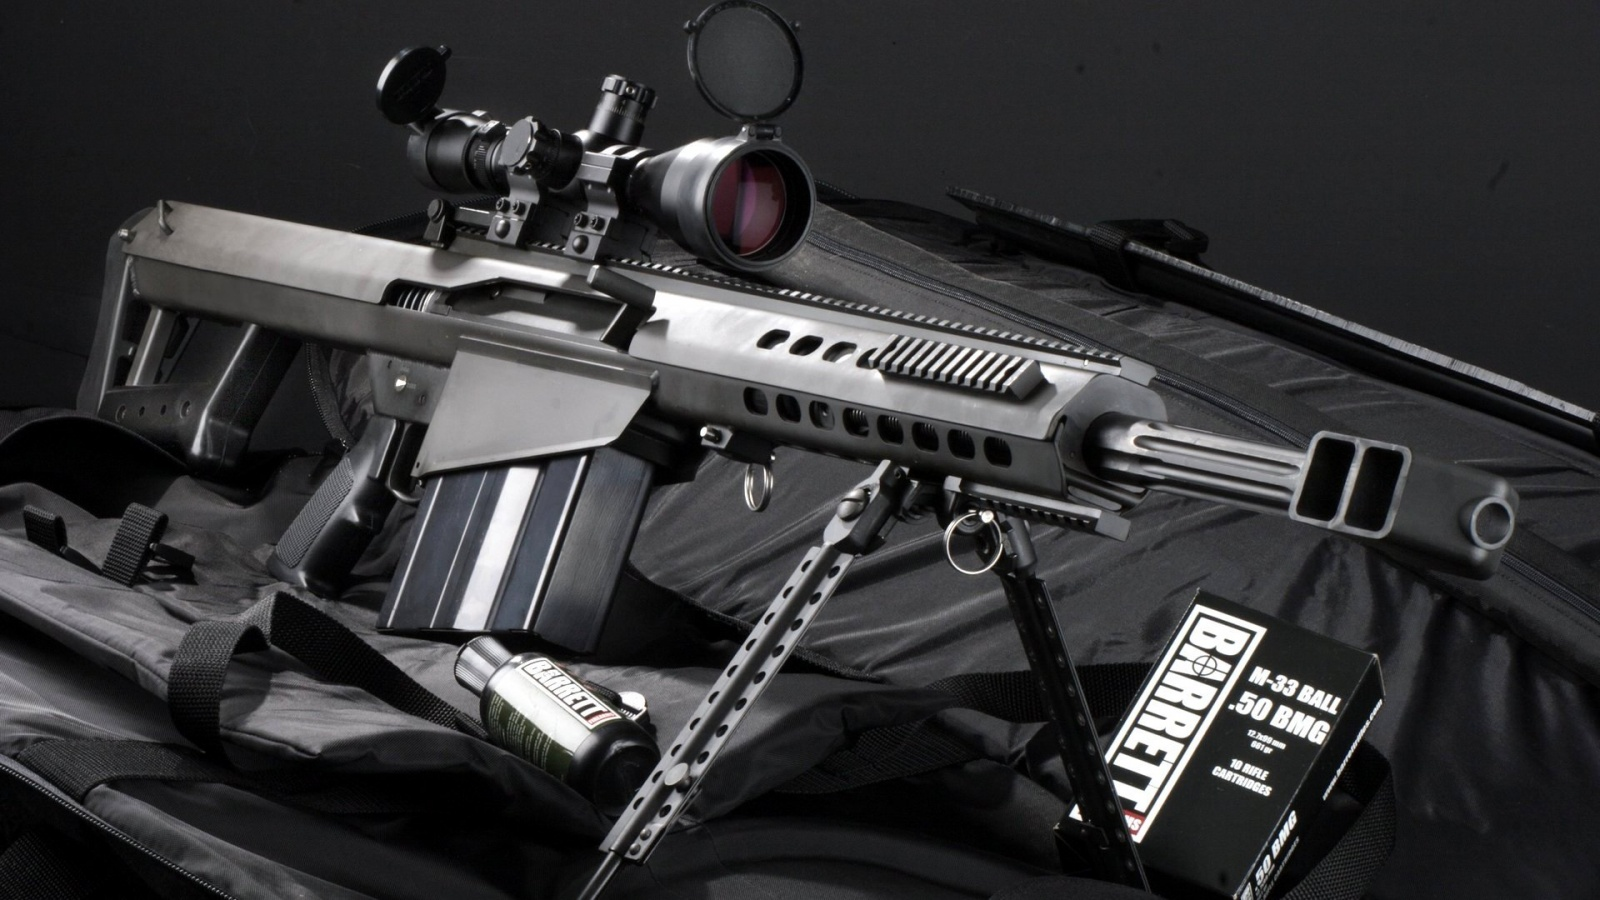 Sniper Rifle M82a1 Wallpapers - 852x480 - 136585